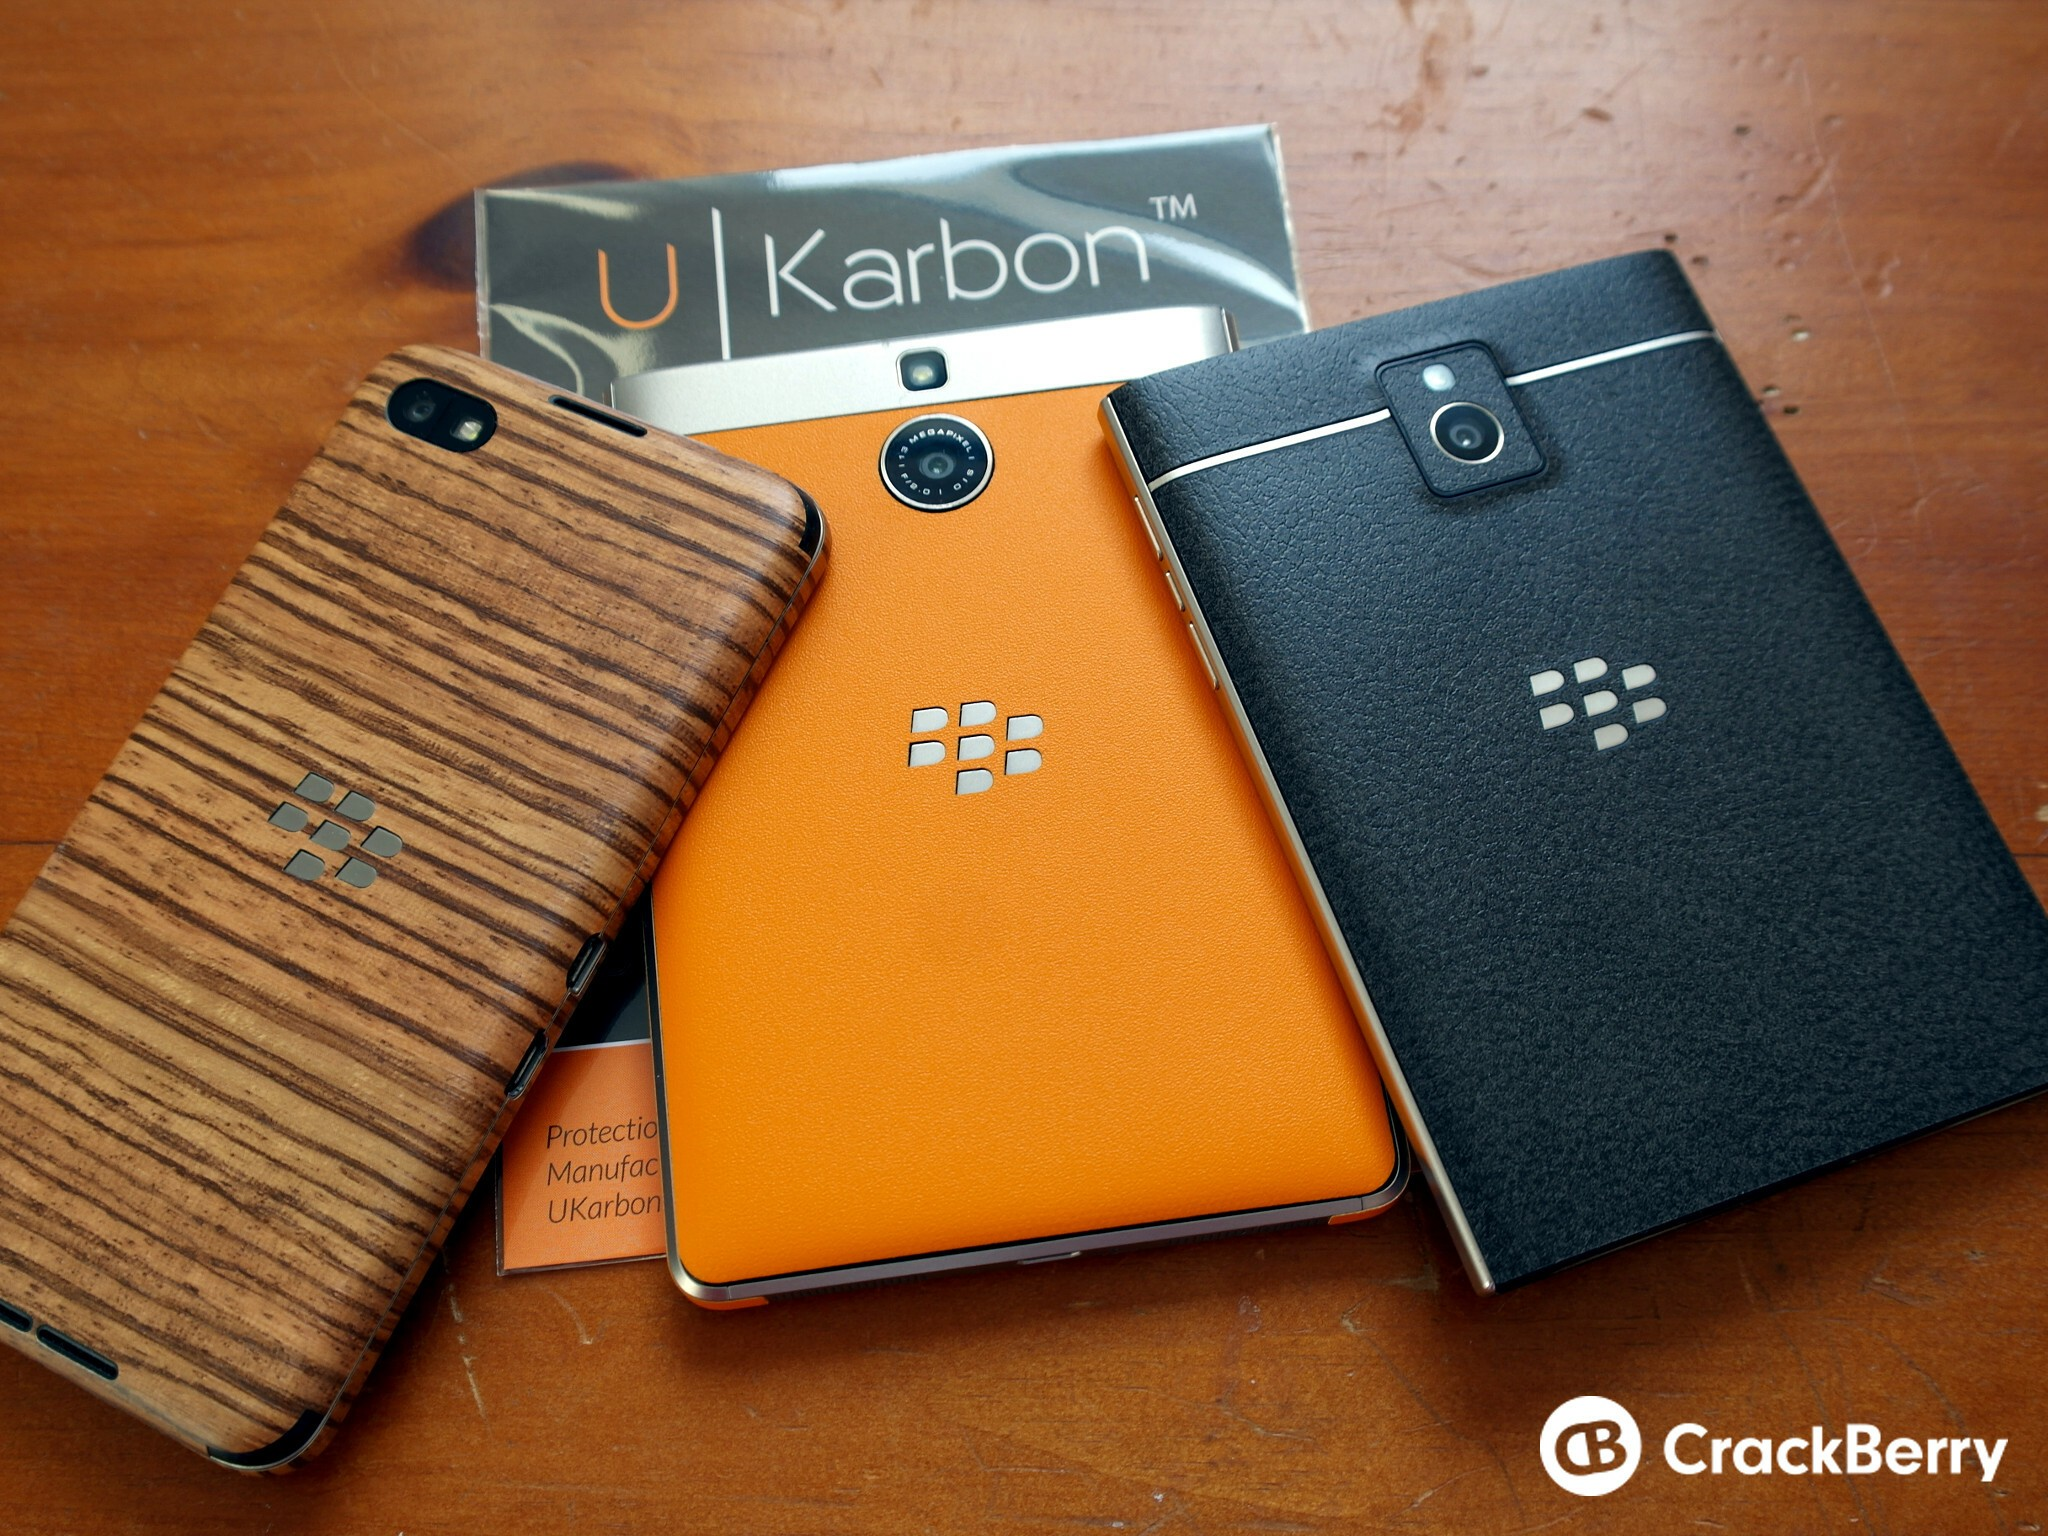 UKarbon skins are a great way to change up the look of your BlackBerry